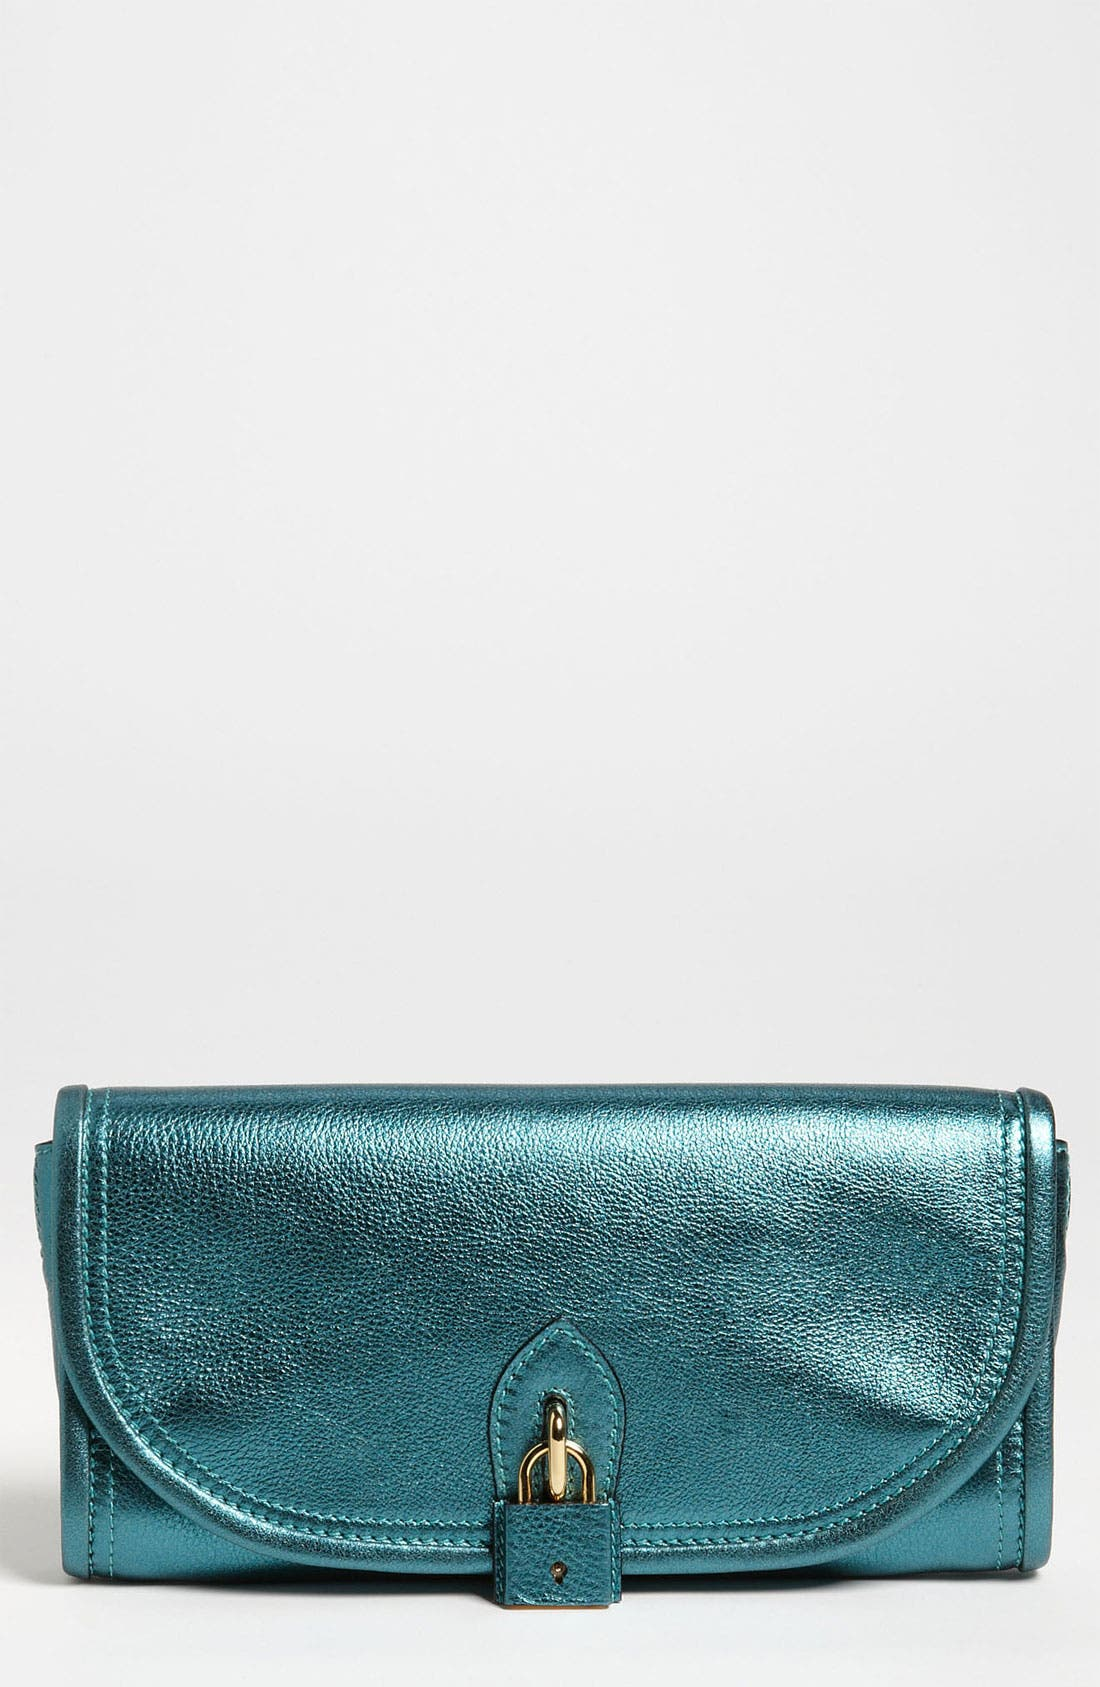 Alternate Image 1 Selected - Burberry 'Soft Grainy Metallic' Leather Clutch